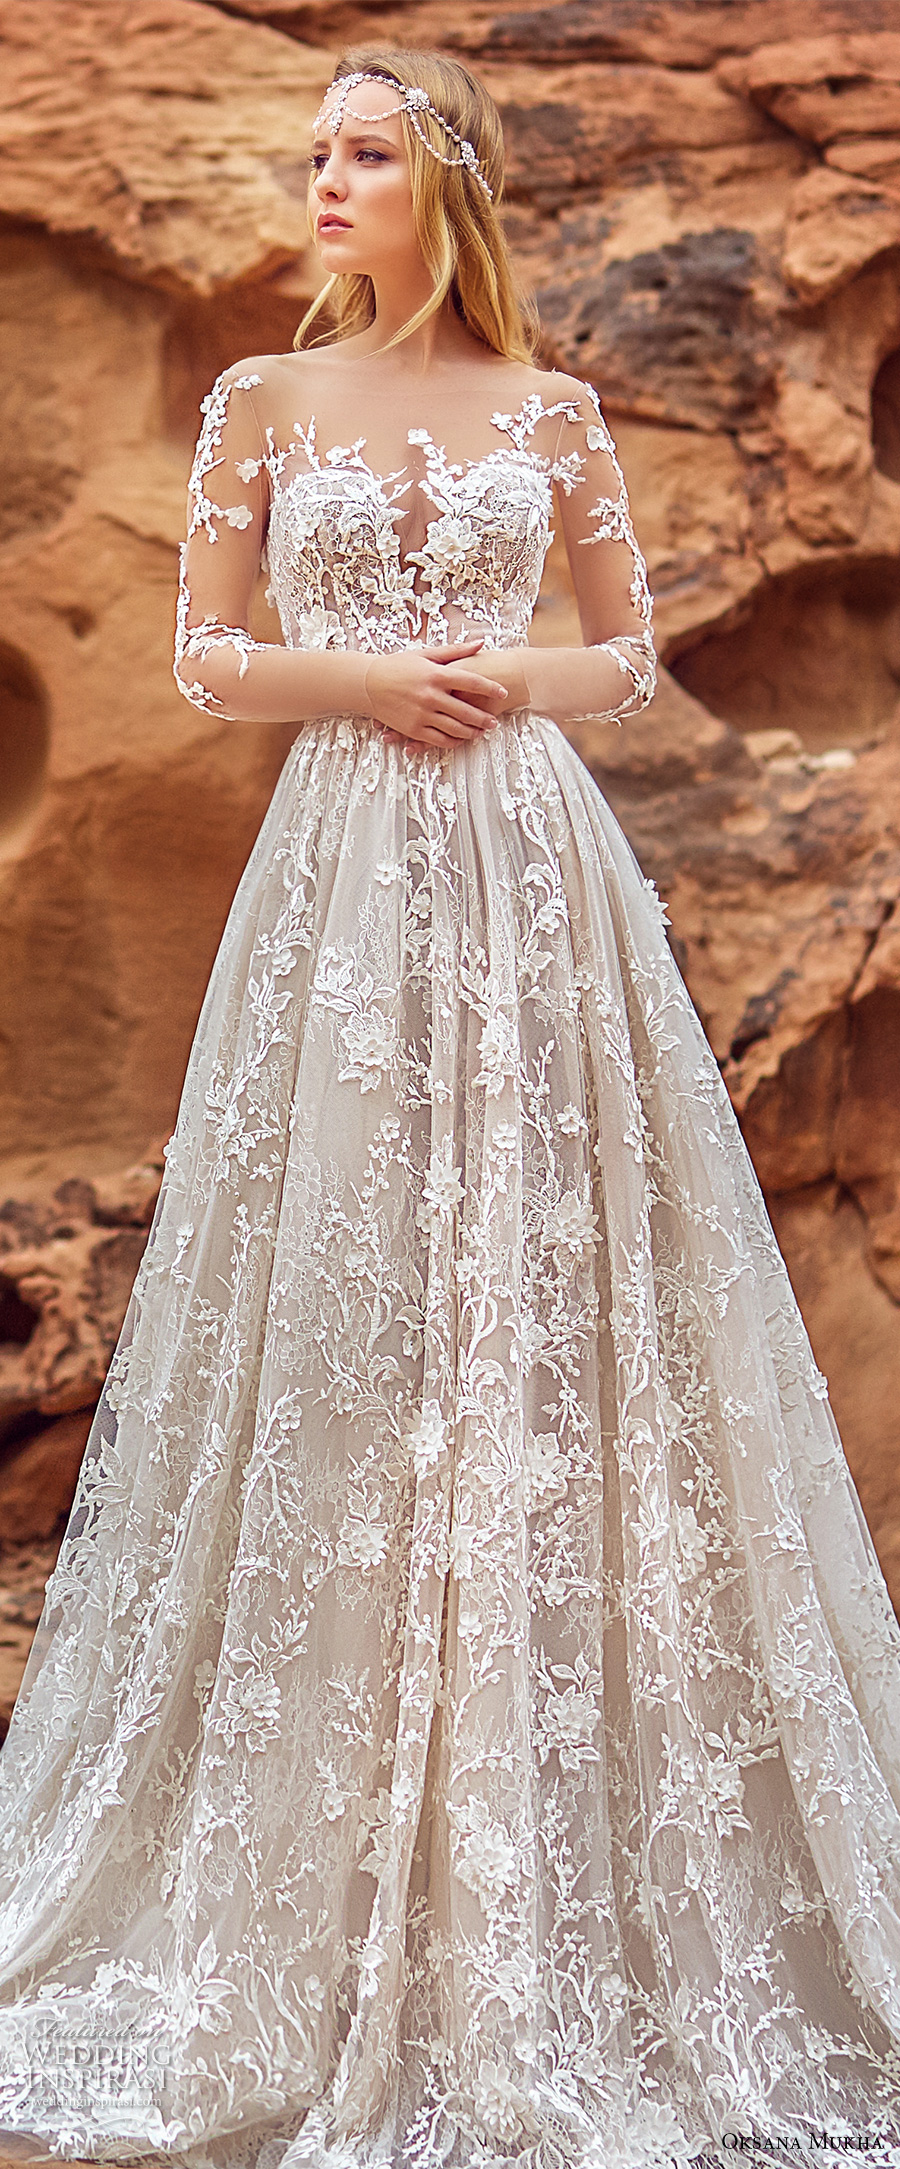 oksana mukha 2018 bridal three quarter sleeves sweetheart neckline full embellishment princess a line wedding dress with pockets open back royal train (lilana) zv